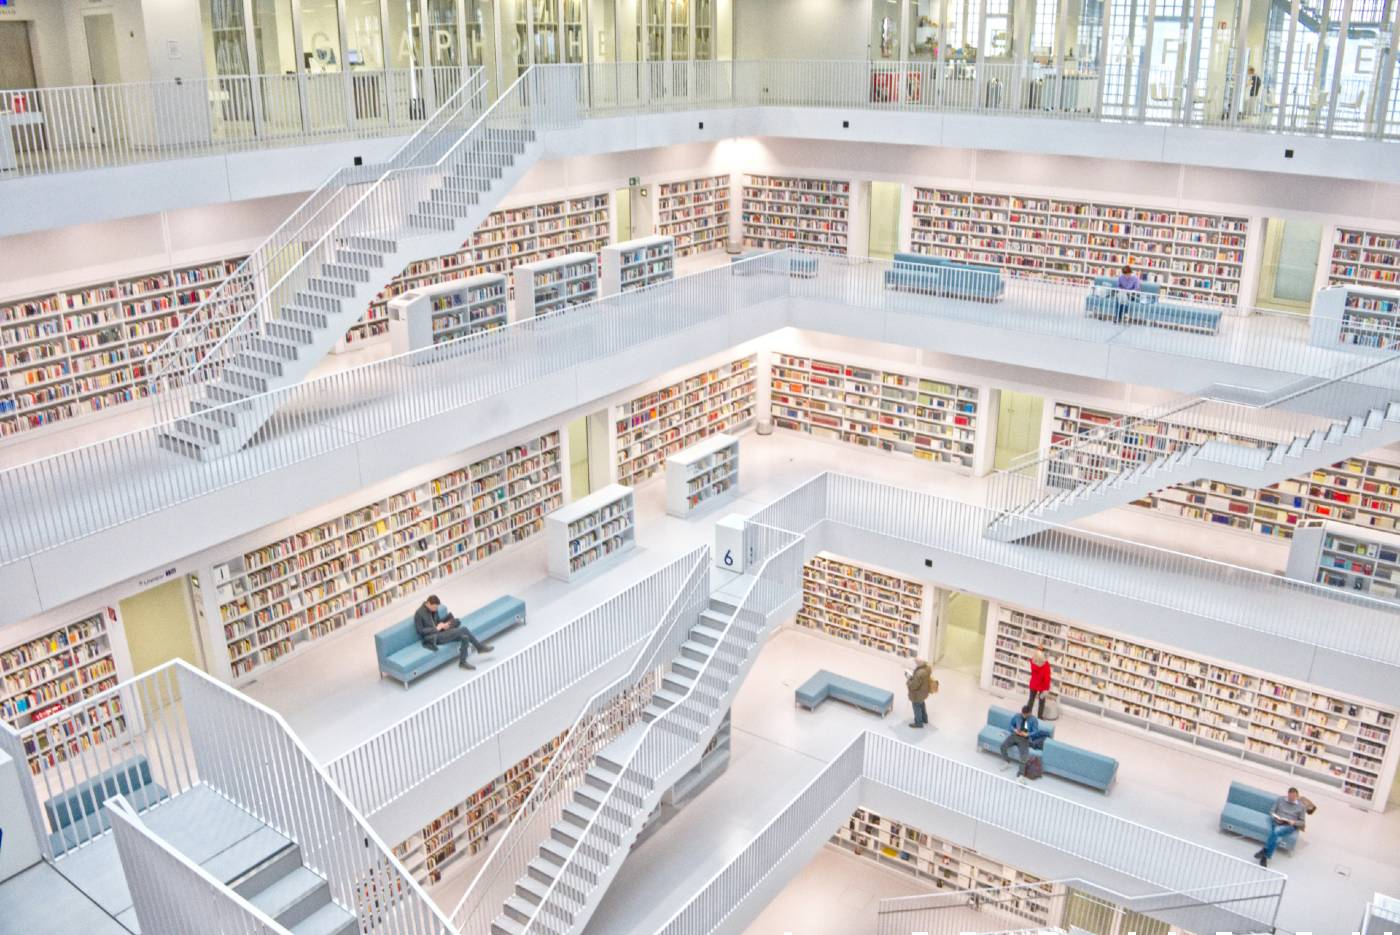 A huge library with white balconies and stairways, set across 5 floors